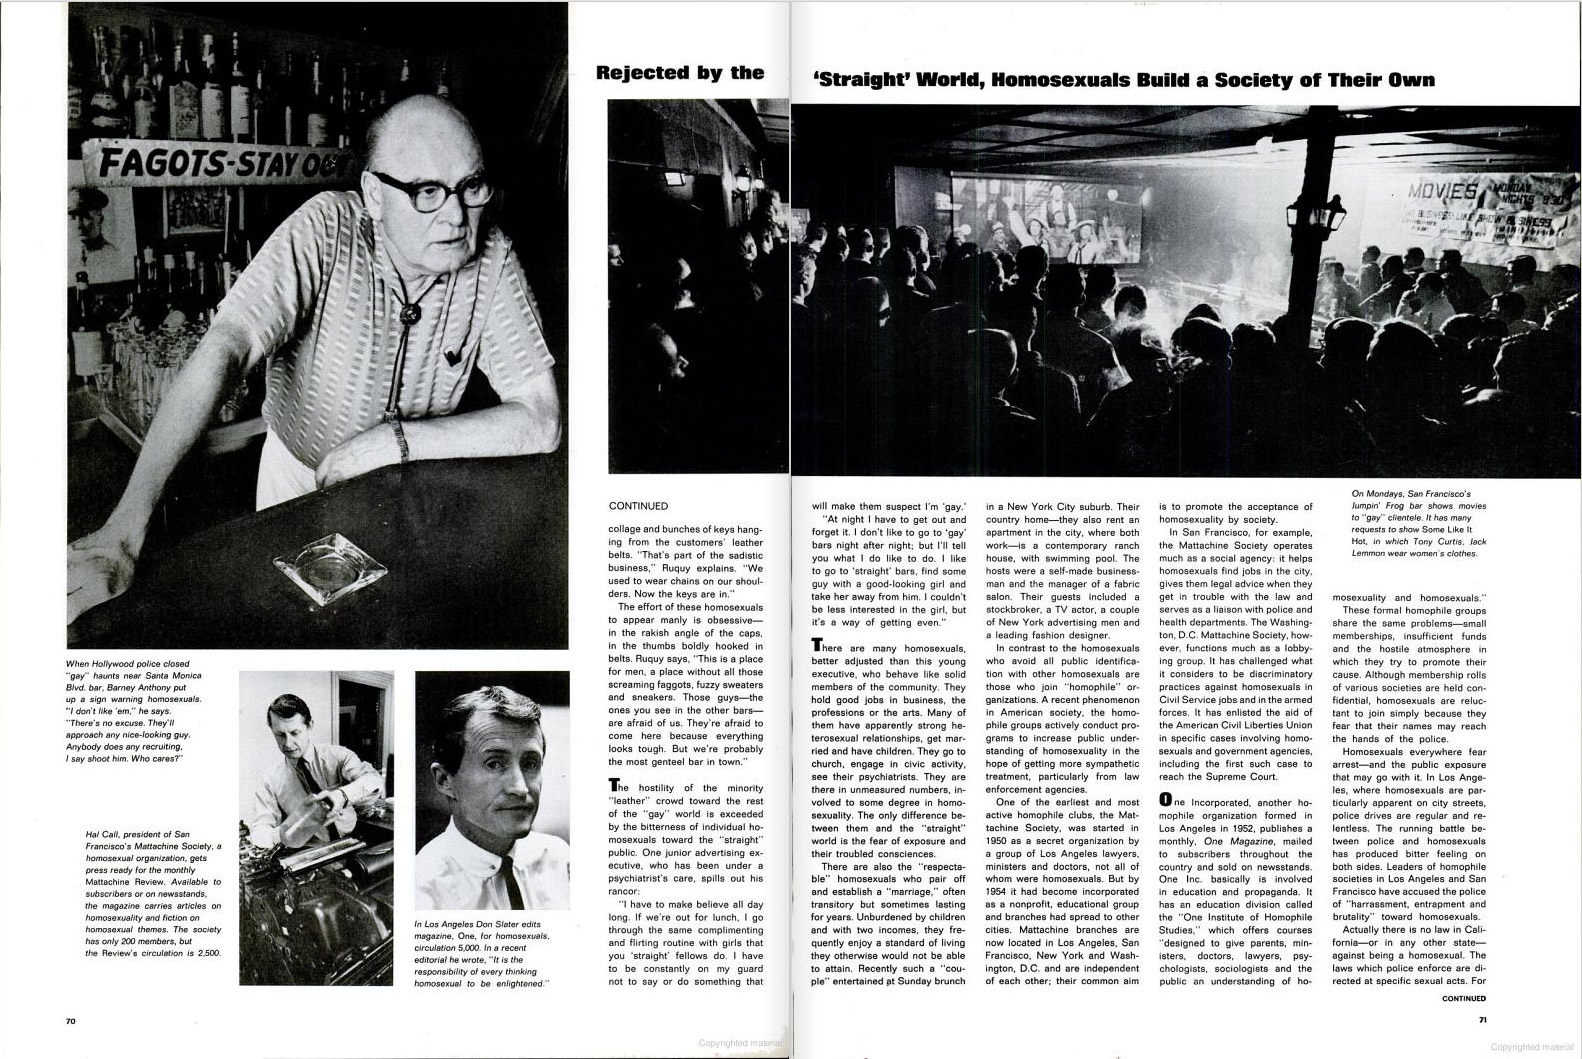 "June 26, 1964 issue of LIFE magazine. Caption for top left photo reads: ""When Hollywood police closed 'gay' haunts near Santa Monica Blvd. bar, Barney Anthony put up a sign warning homosexuals. 'I don't like 'em,' he says. 'There's no excuse. They'll approach any nice-looking guy. Anybody does any recruiting, I say shoot him. Who cares?'"""